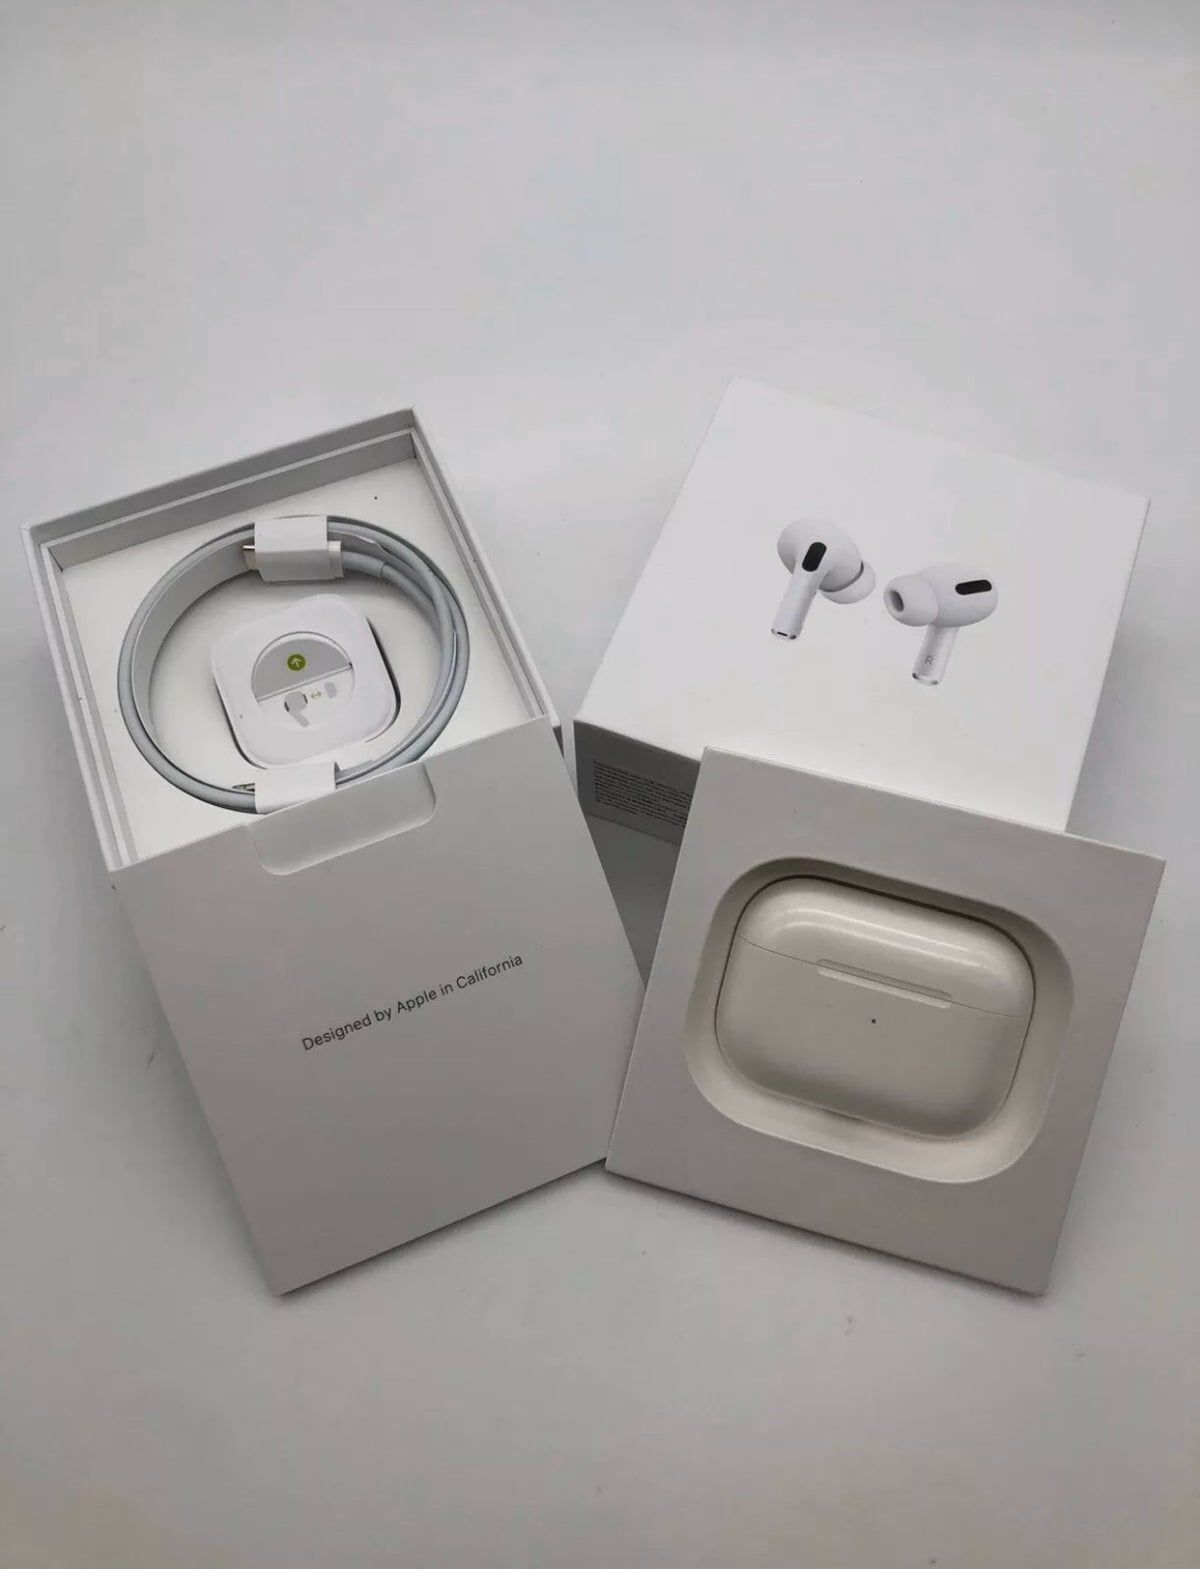 Airpods Pro In 2021 Pretty Iphone Cases Apple Products Electronics Apple